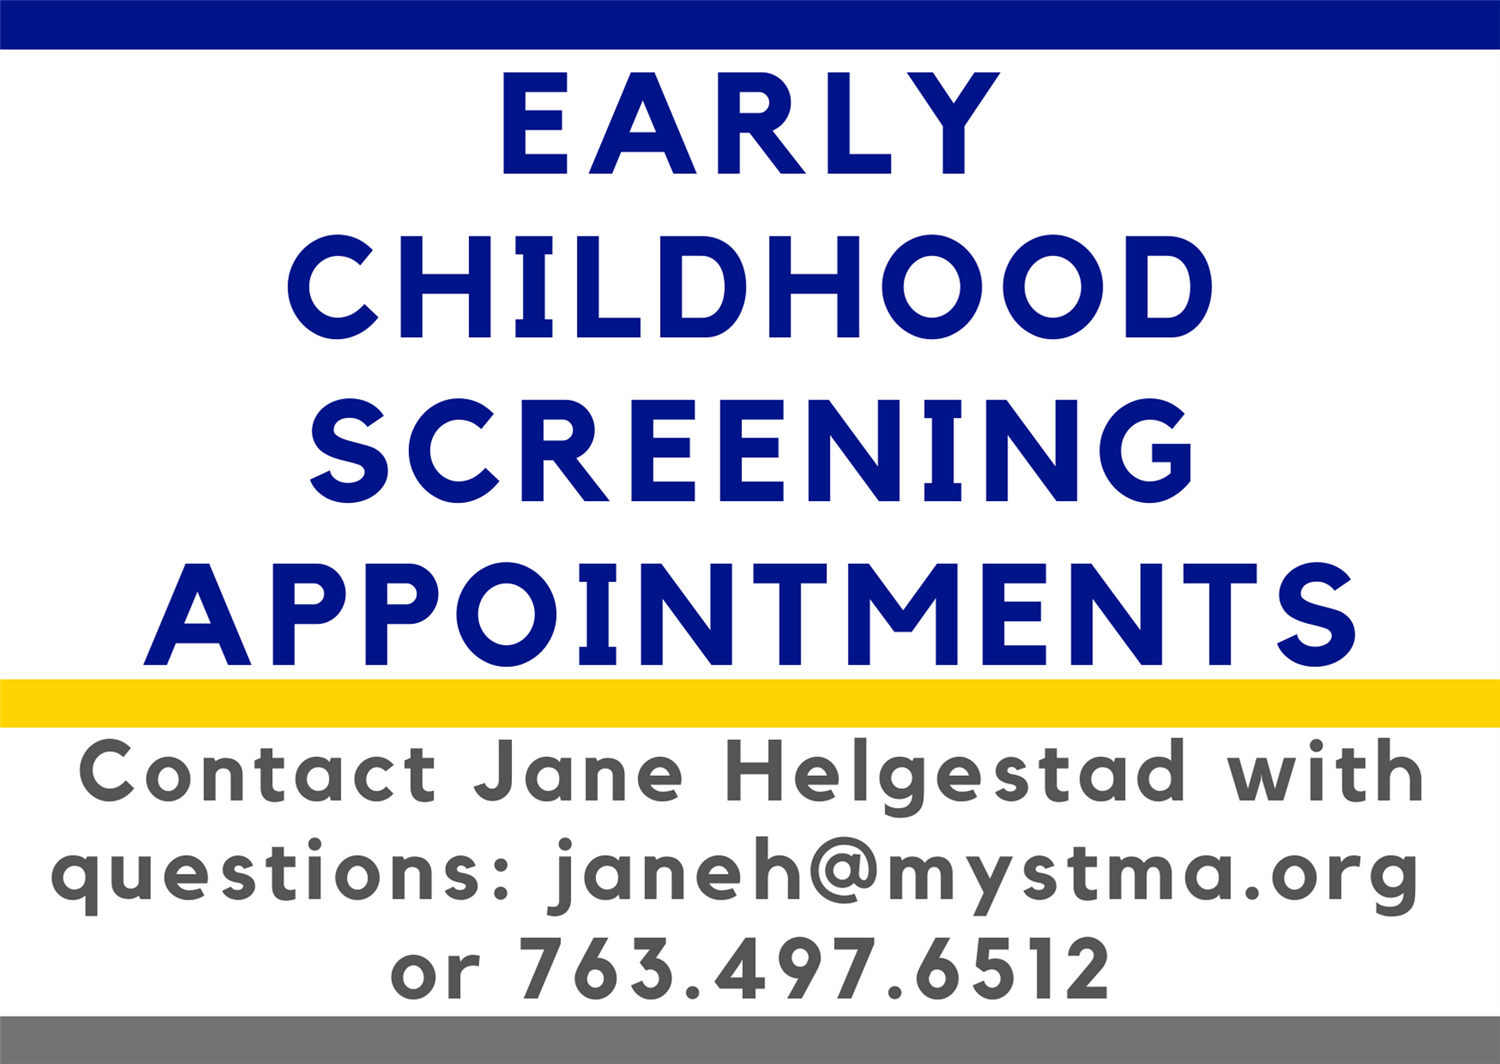 Click Here to Make a Screening Appointment